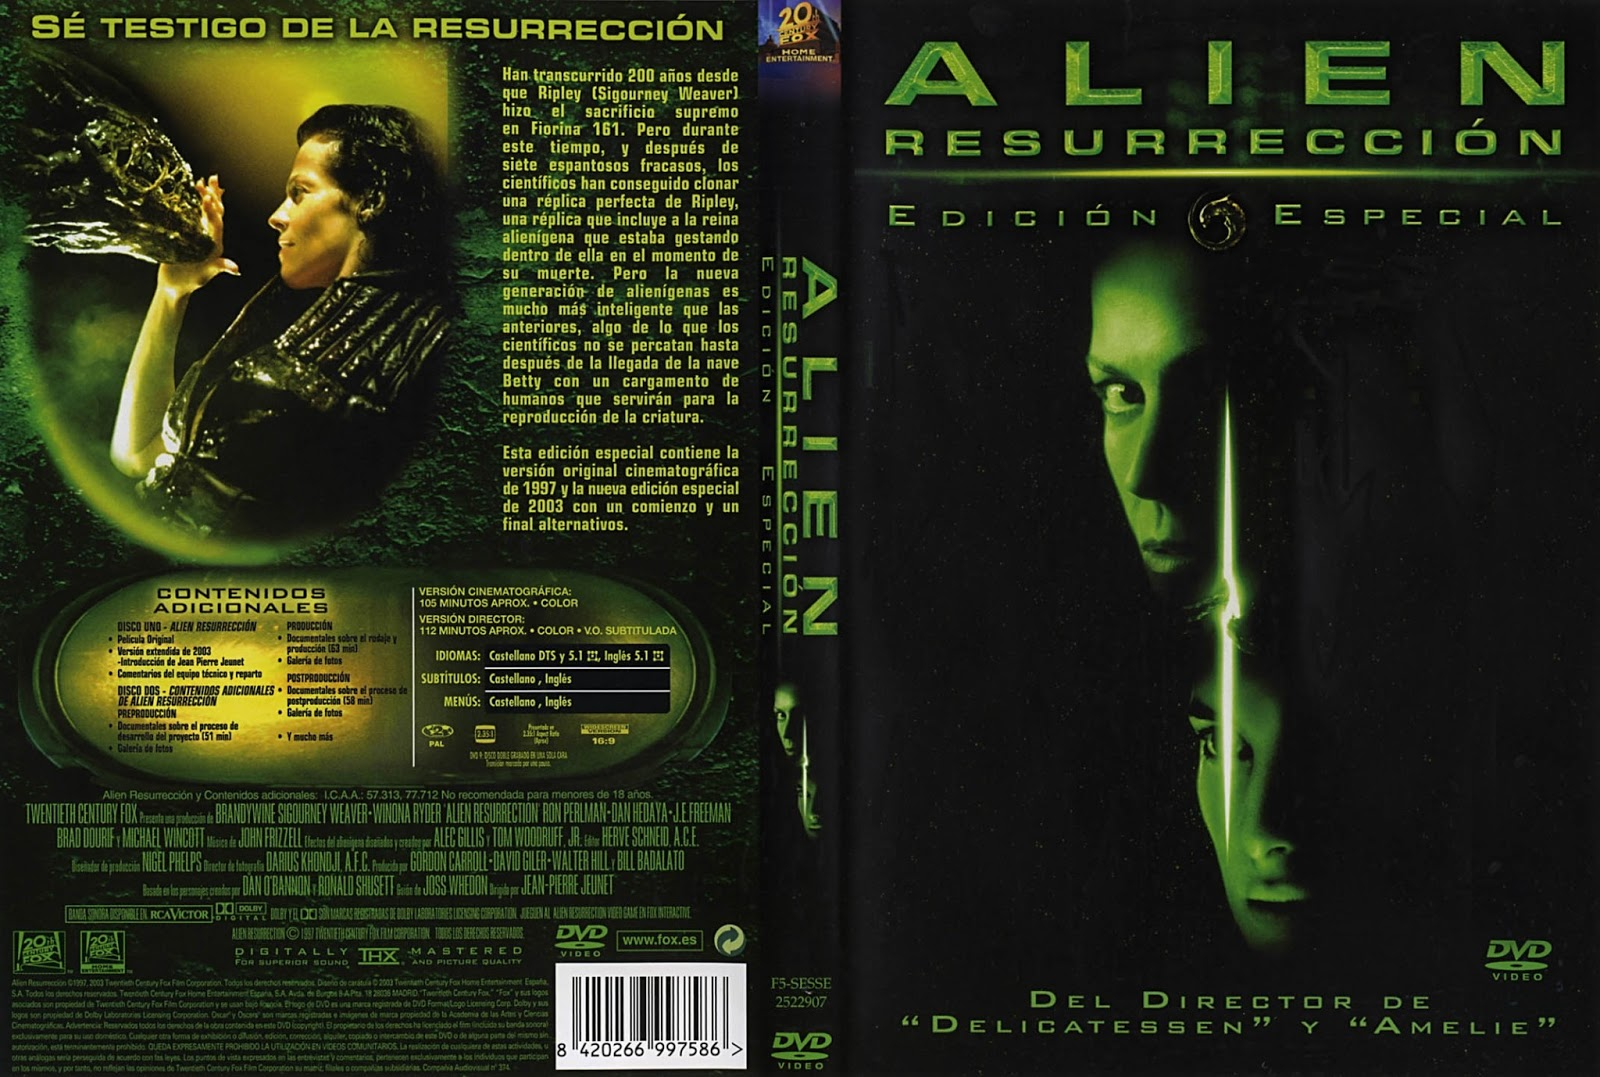 Alien Resurreccion DVD